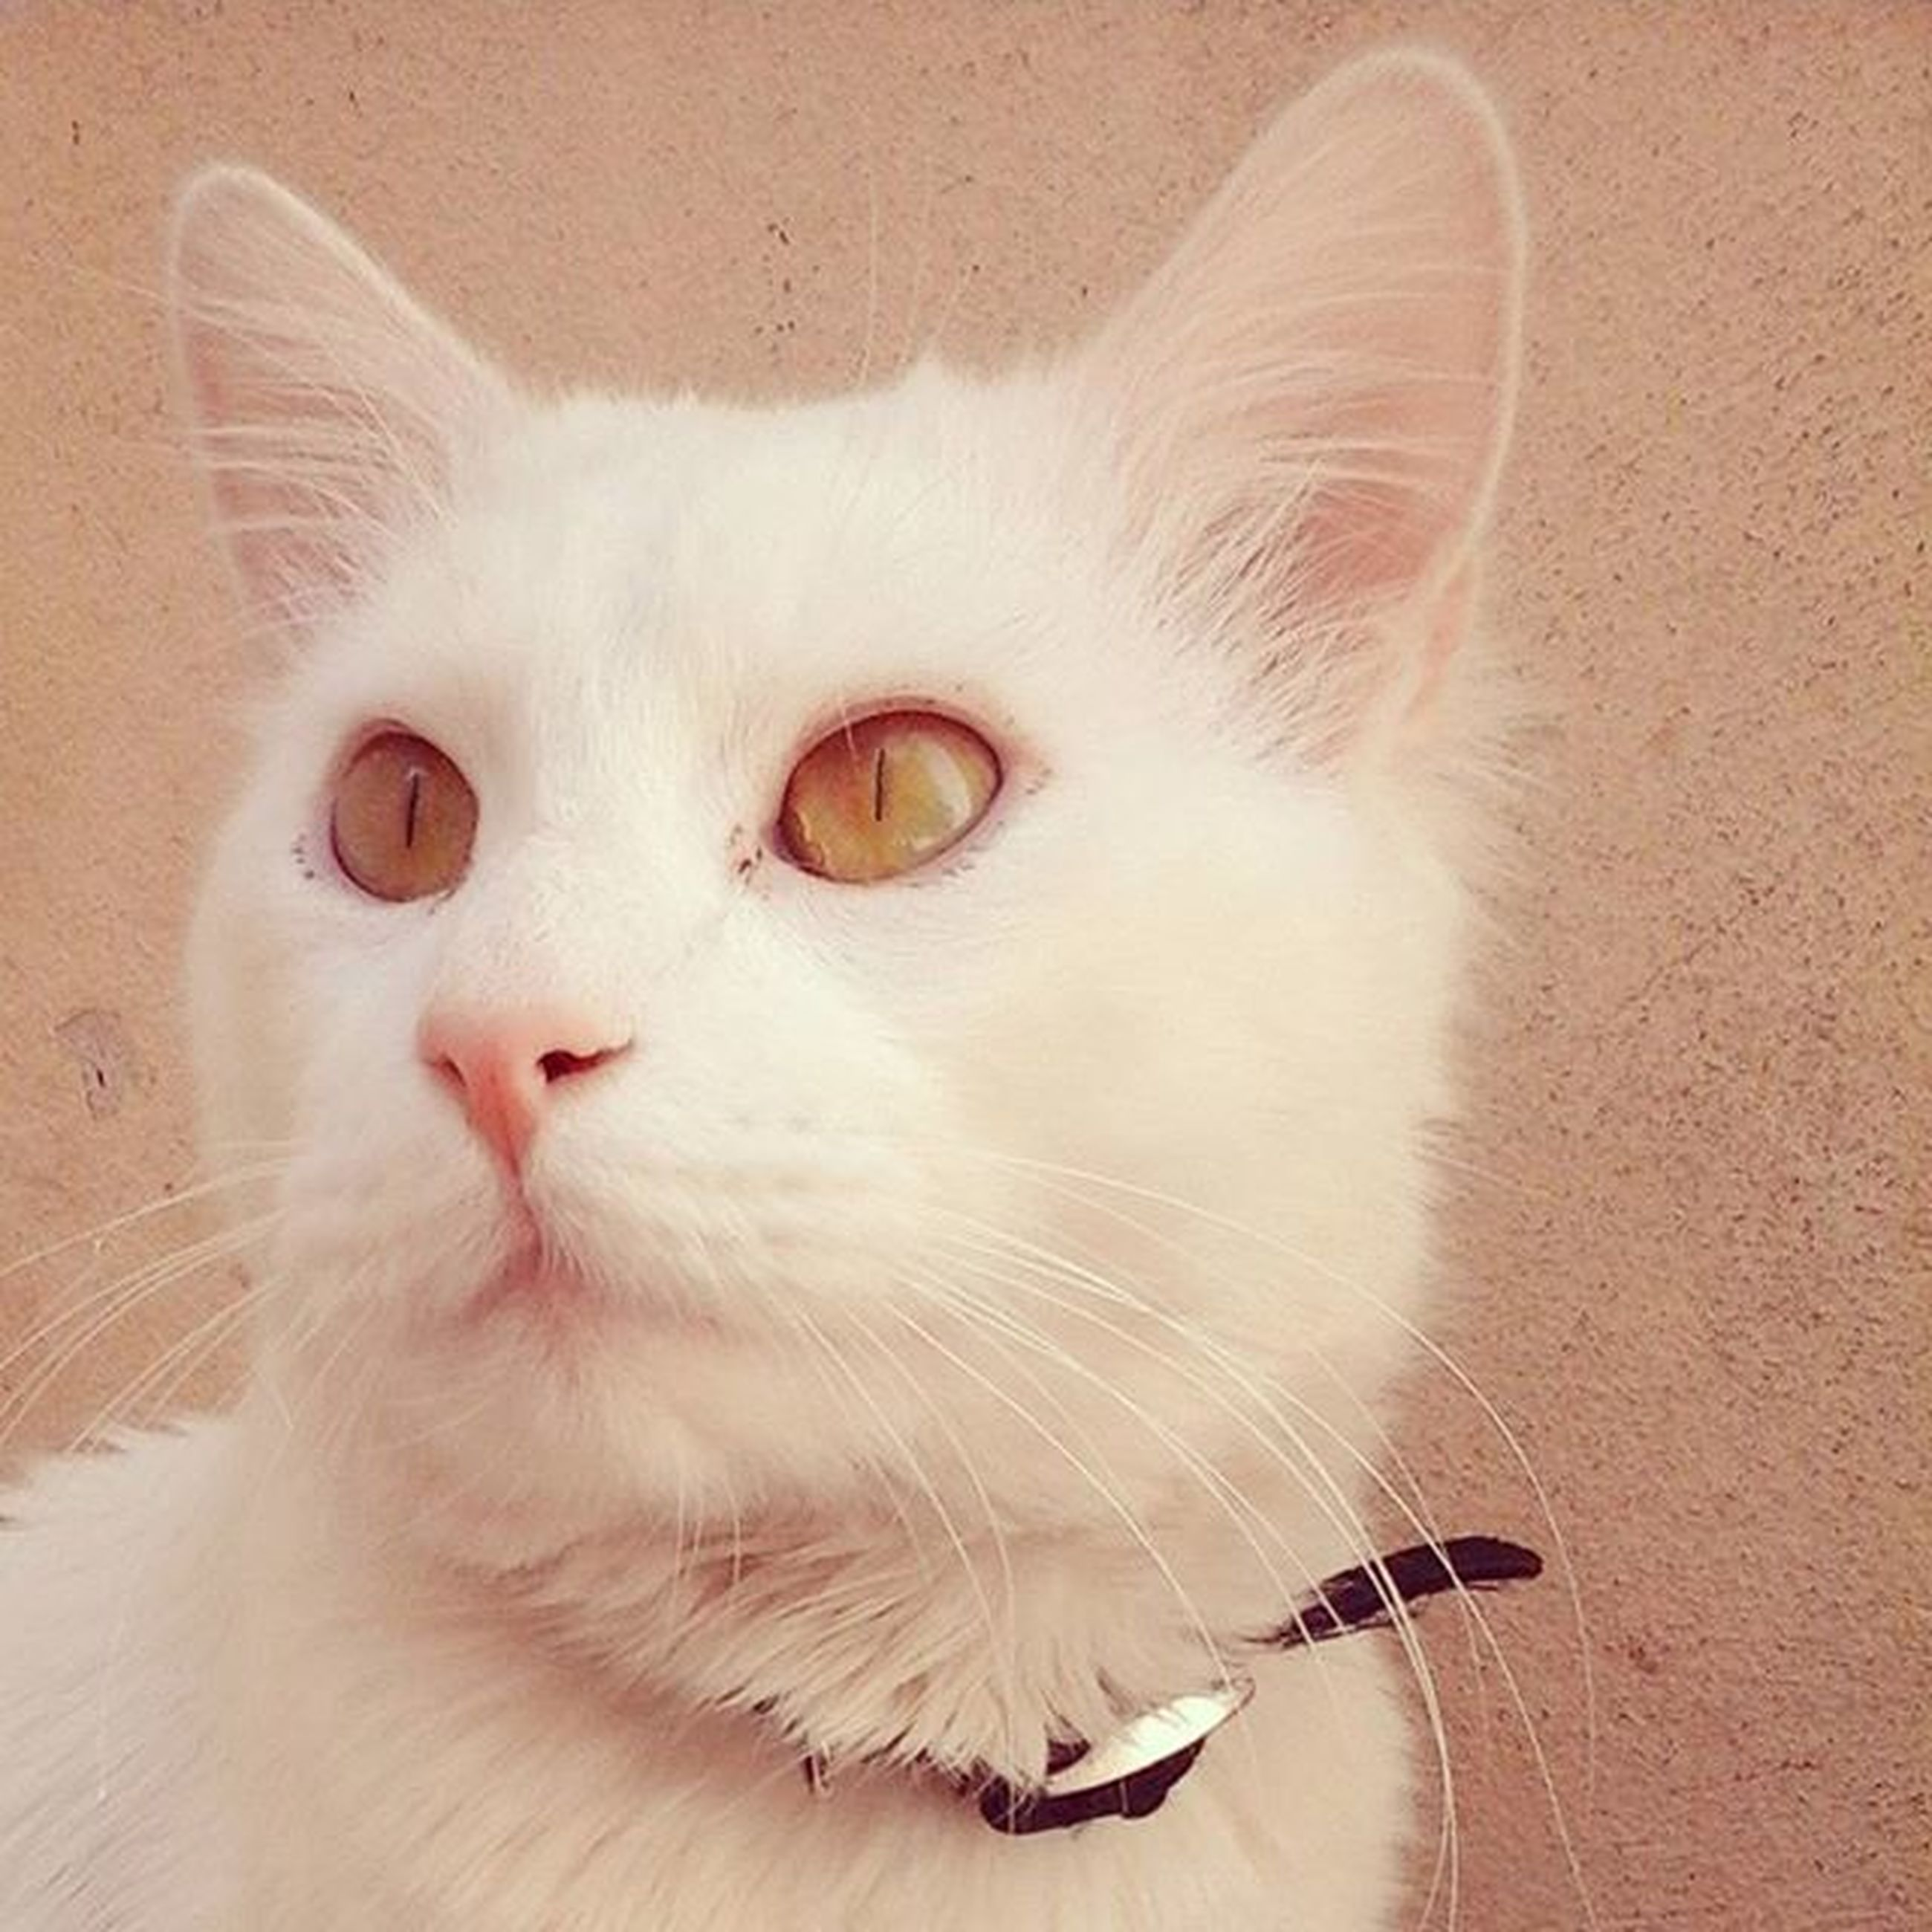 domestic cat, cat, domestic animals, pets, feline, mammal, animal themes, one animal, whisker, looking at camera, indoors, portrait, white color, close-up, alertness, relaxation, staring, no people, front view